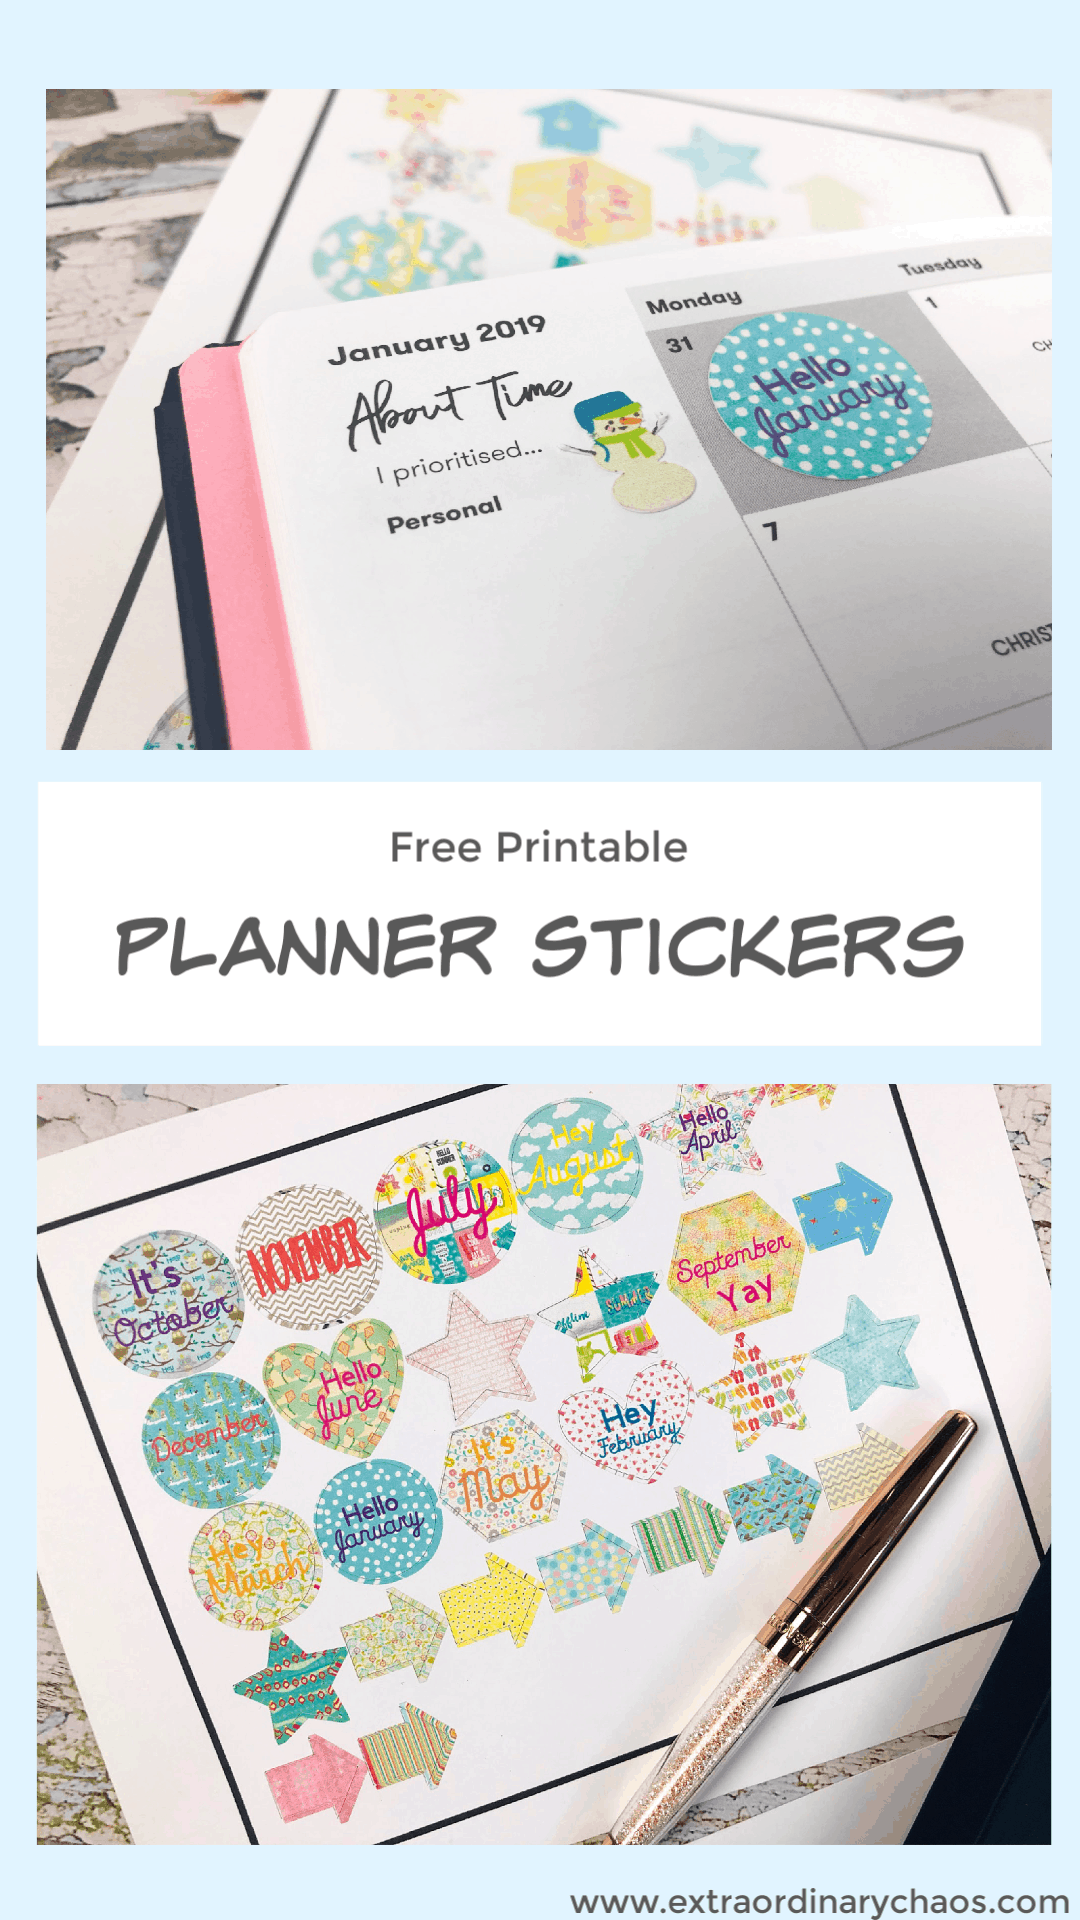 Free printable stickers for planners and bullet journals